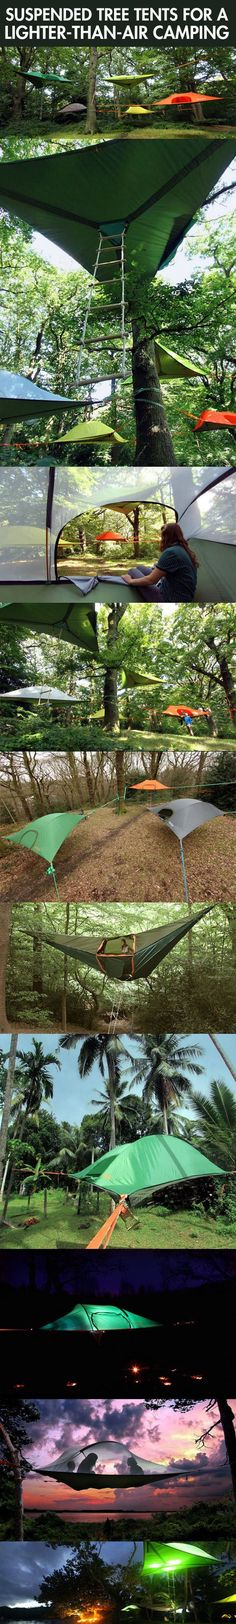 SUSPENDED TREE TENTS! available from Chattanooga Presents on October 18..downtown chattanooga! Urban Campout! See ChattanoogaFun